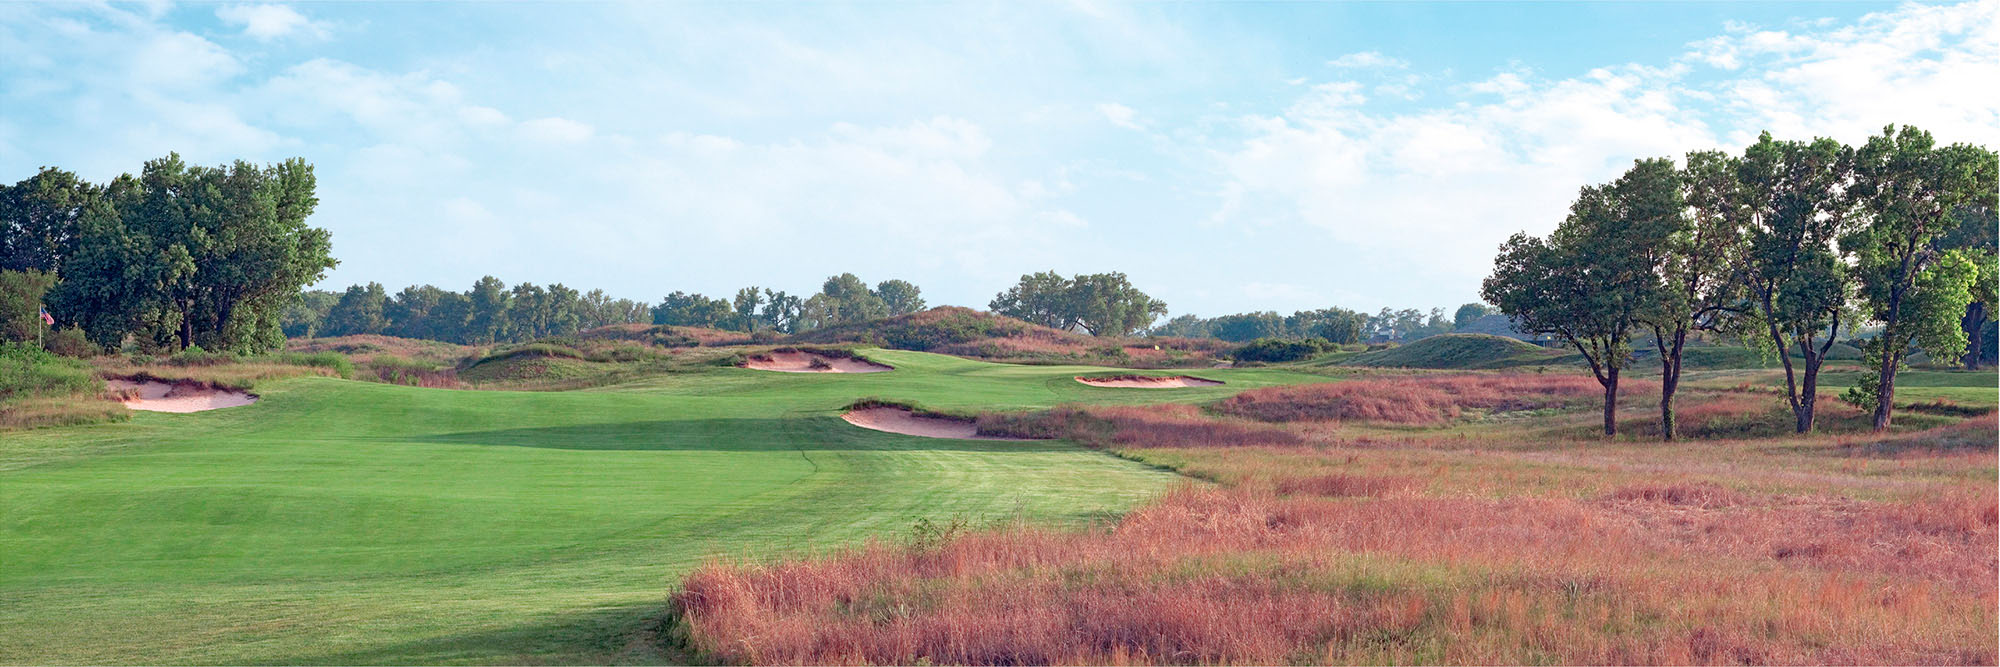 Golf Course Image - Prairie Dunes Country Club No. 16